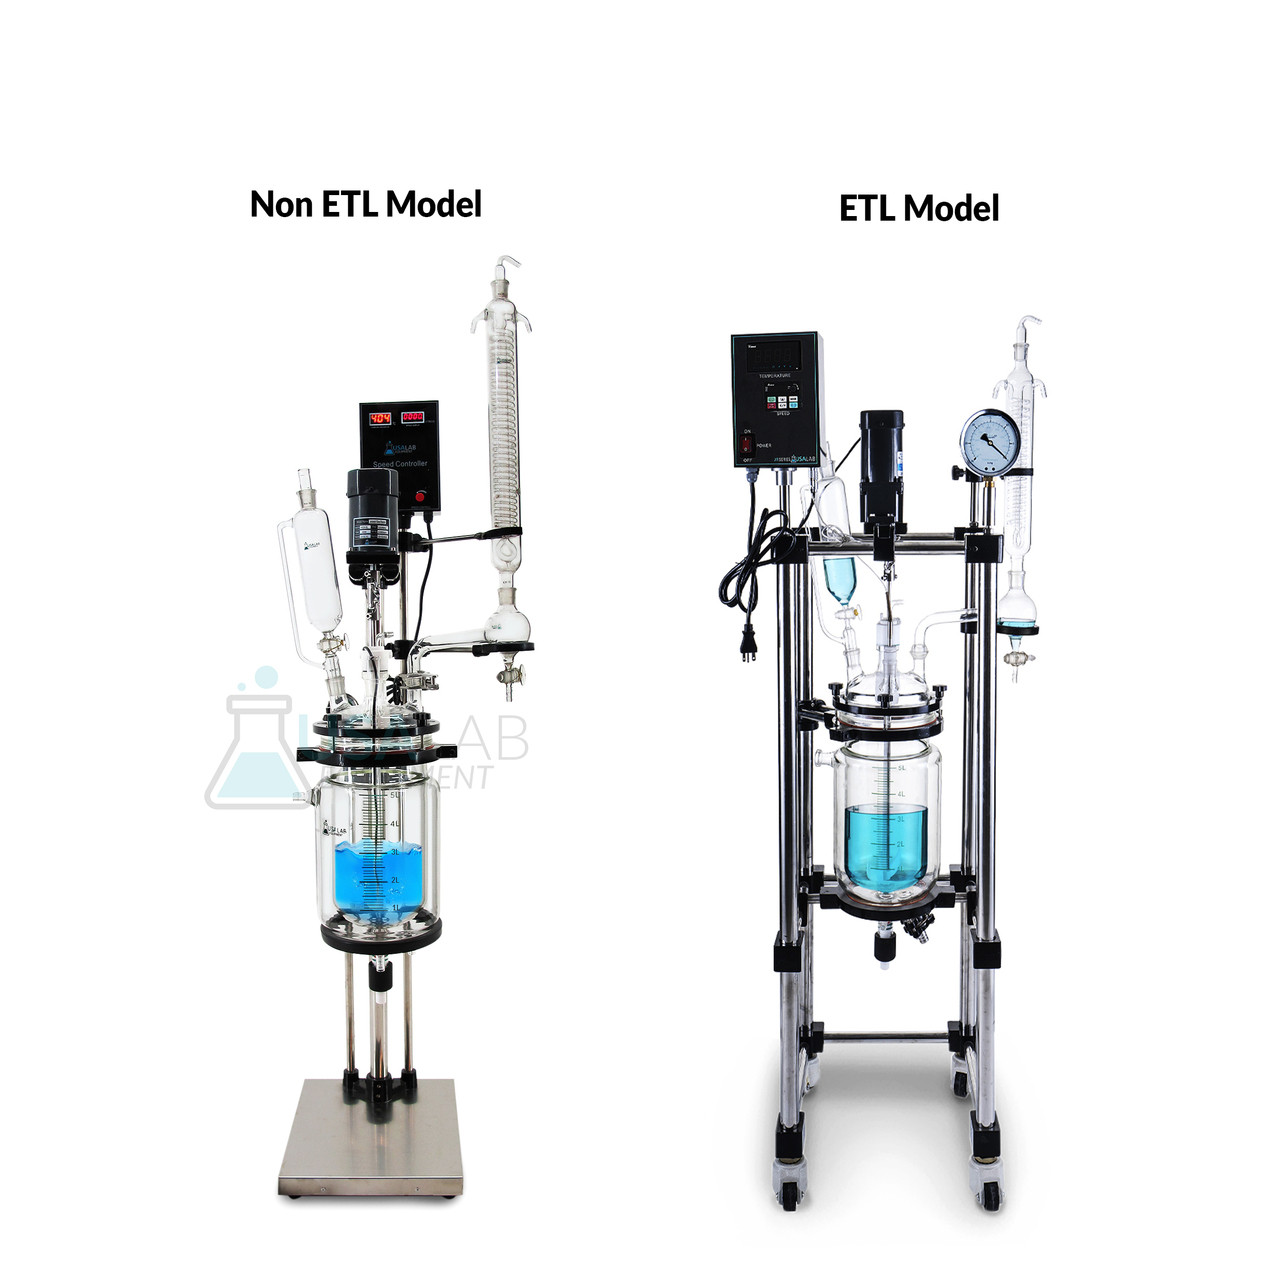 USA Lab 20L Single Jacketed Glass Reactor Optional ETL Certification to UL  and CSA Standards